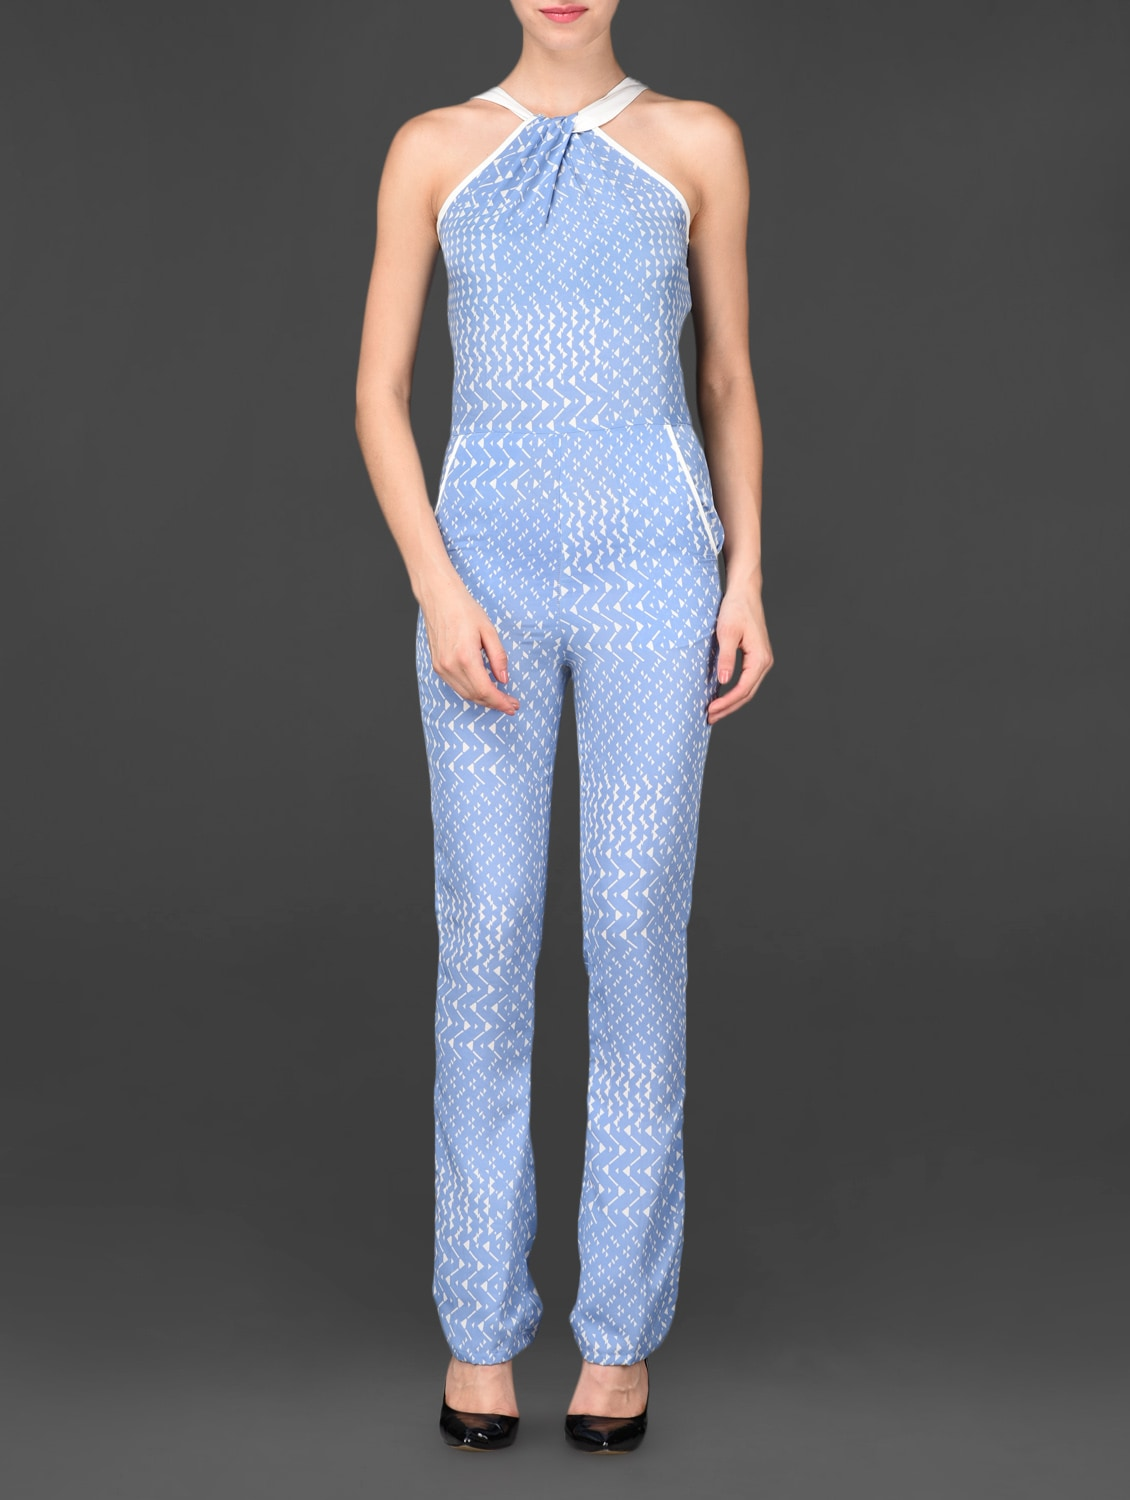 Sleeveless Blue Printed Poly Crepe Jumpsuit - Urban Helsinki